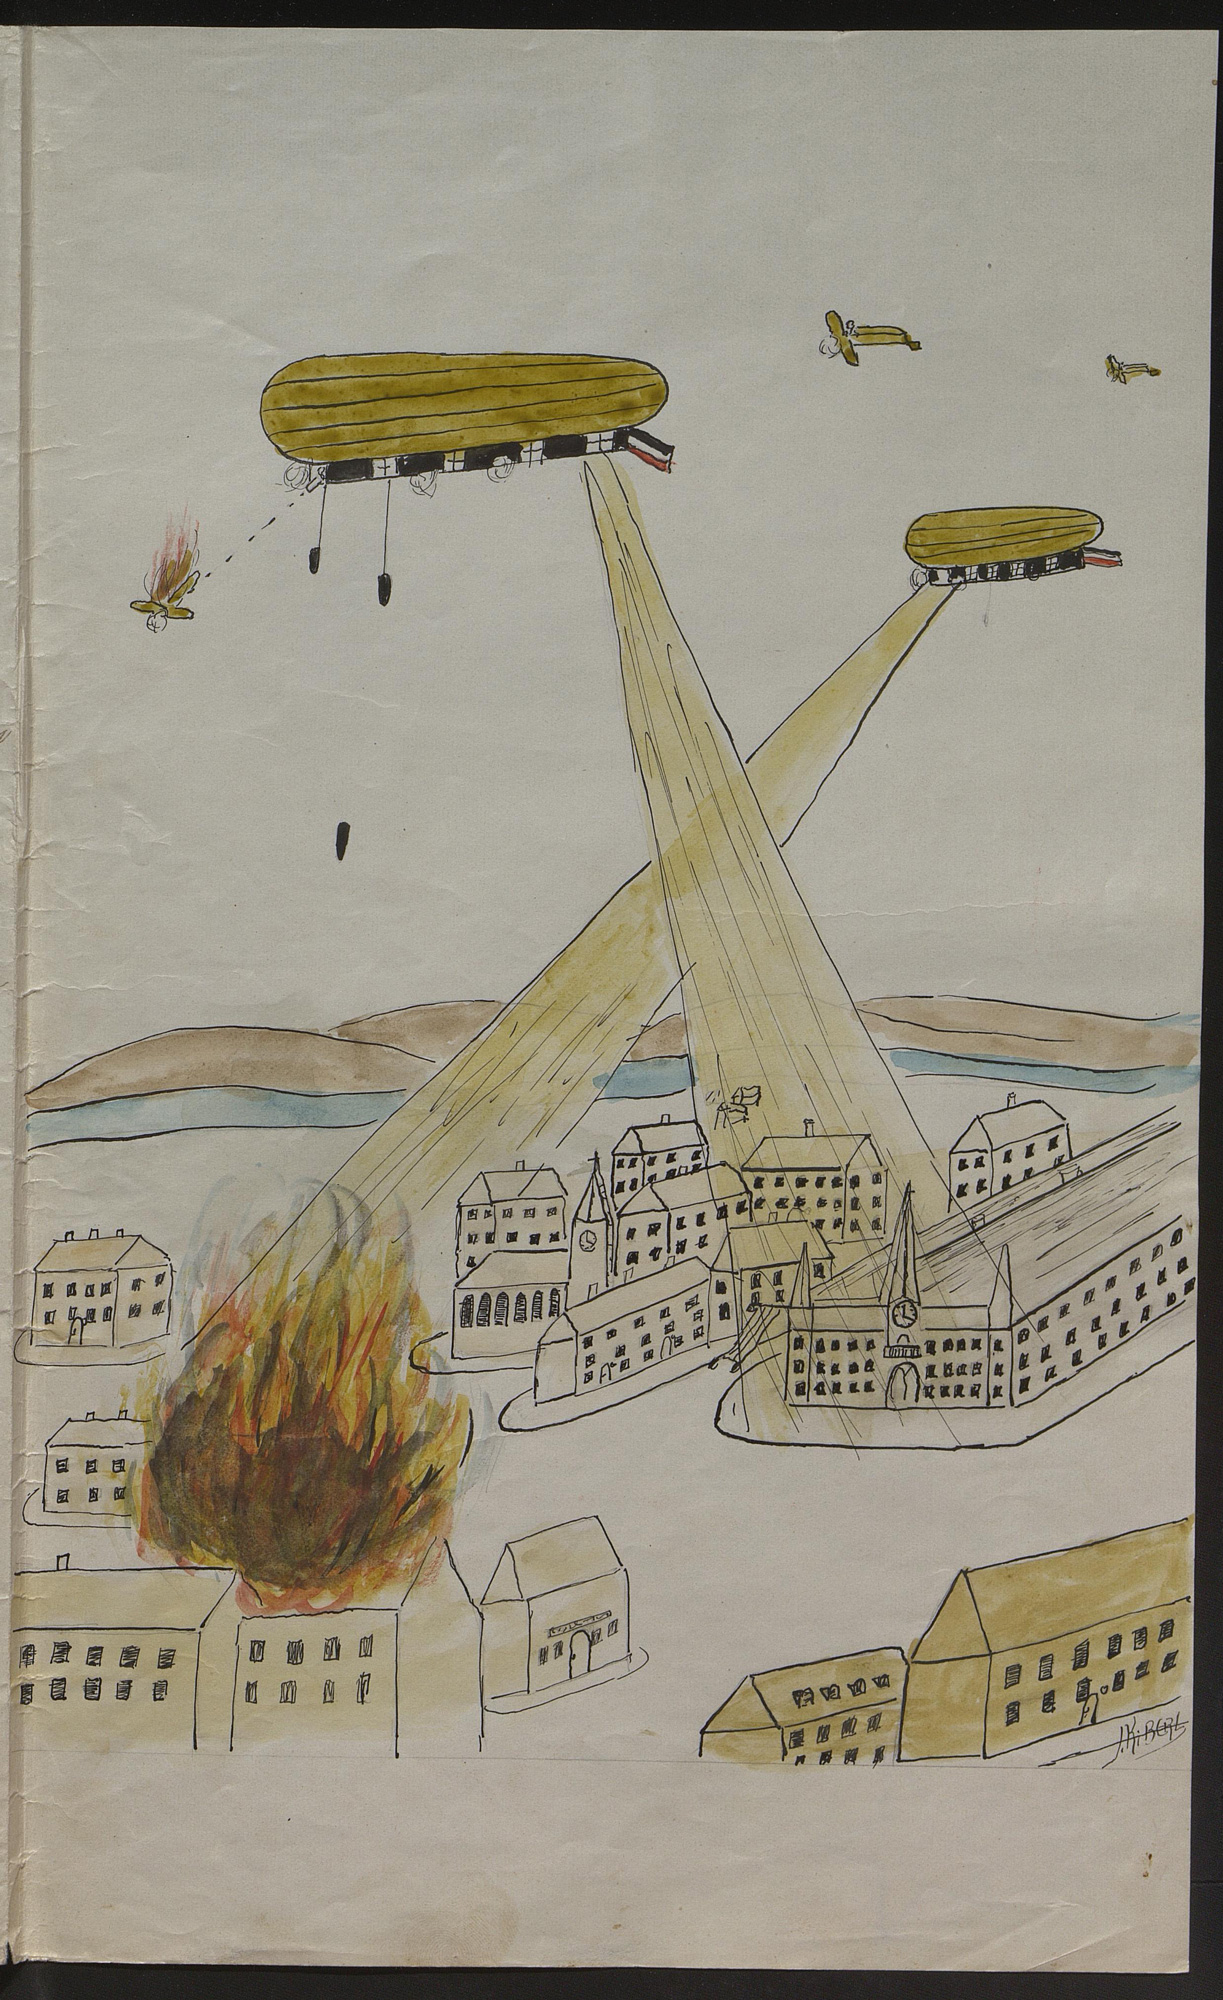 'How I made a nightly attack on London with my Zeppelin': story written and illustrated by a schoolboy, in which he imagines bombing London and returning to cheering crowds.